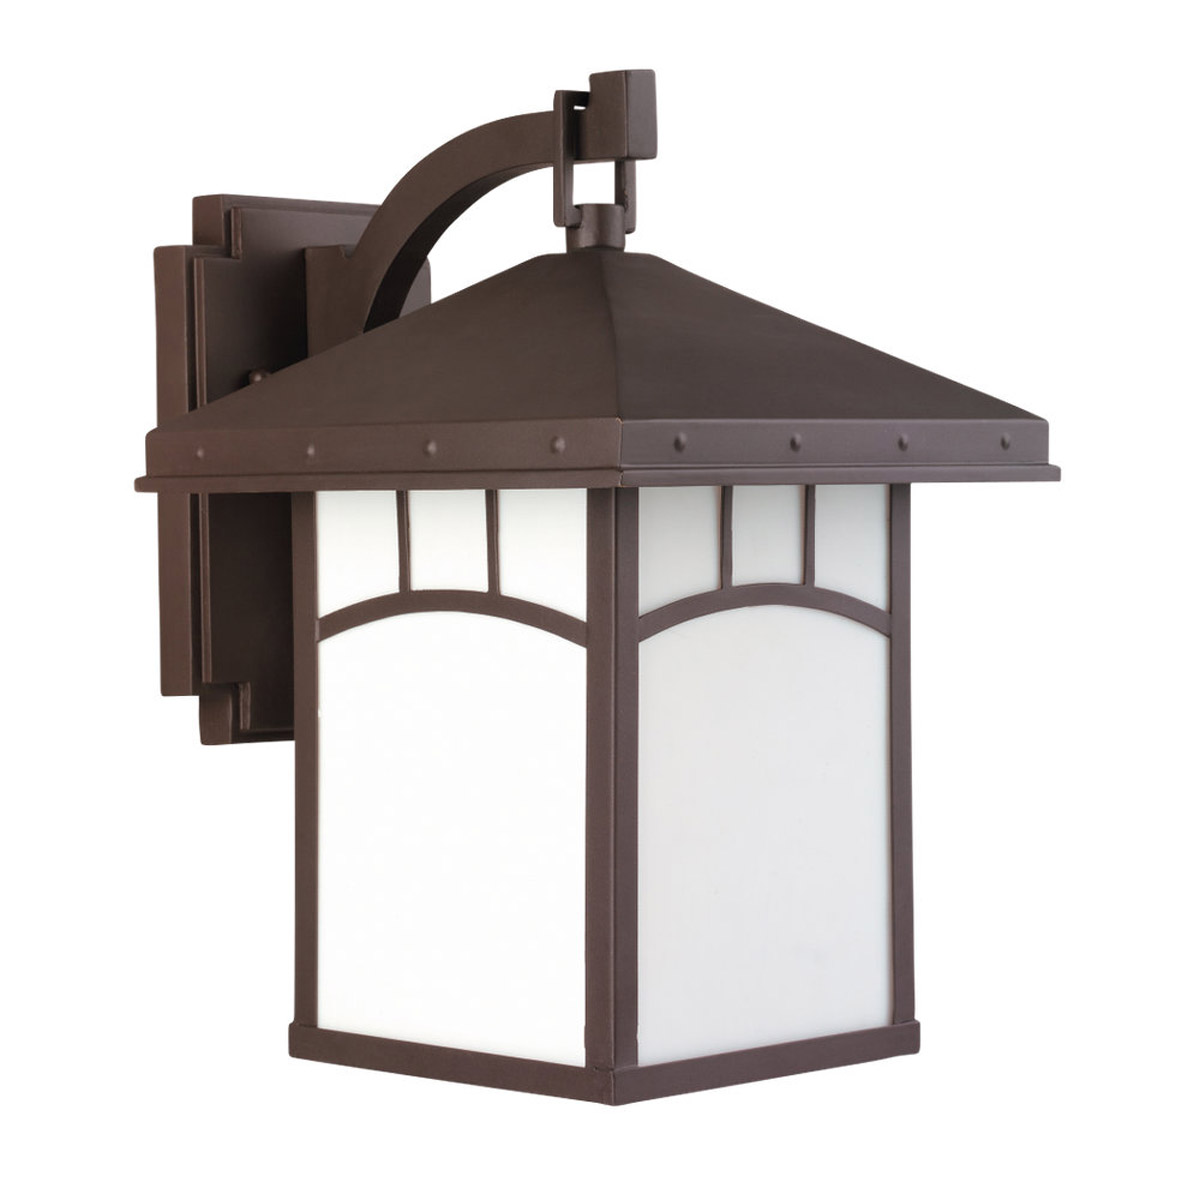 Sea Gull Lighting Ashville 1 Light Outdoor Wall Lantern in Cottage Bronze 88231-833 photo